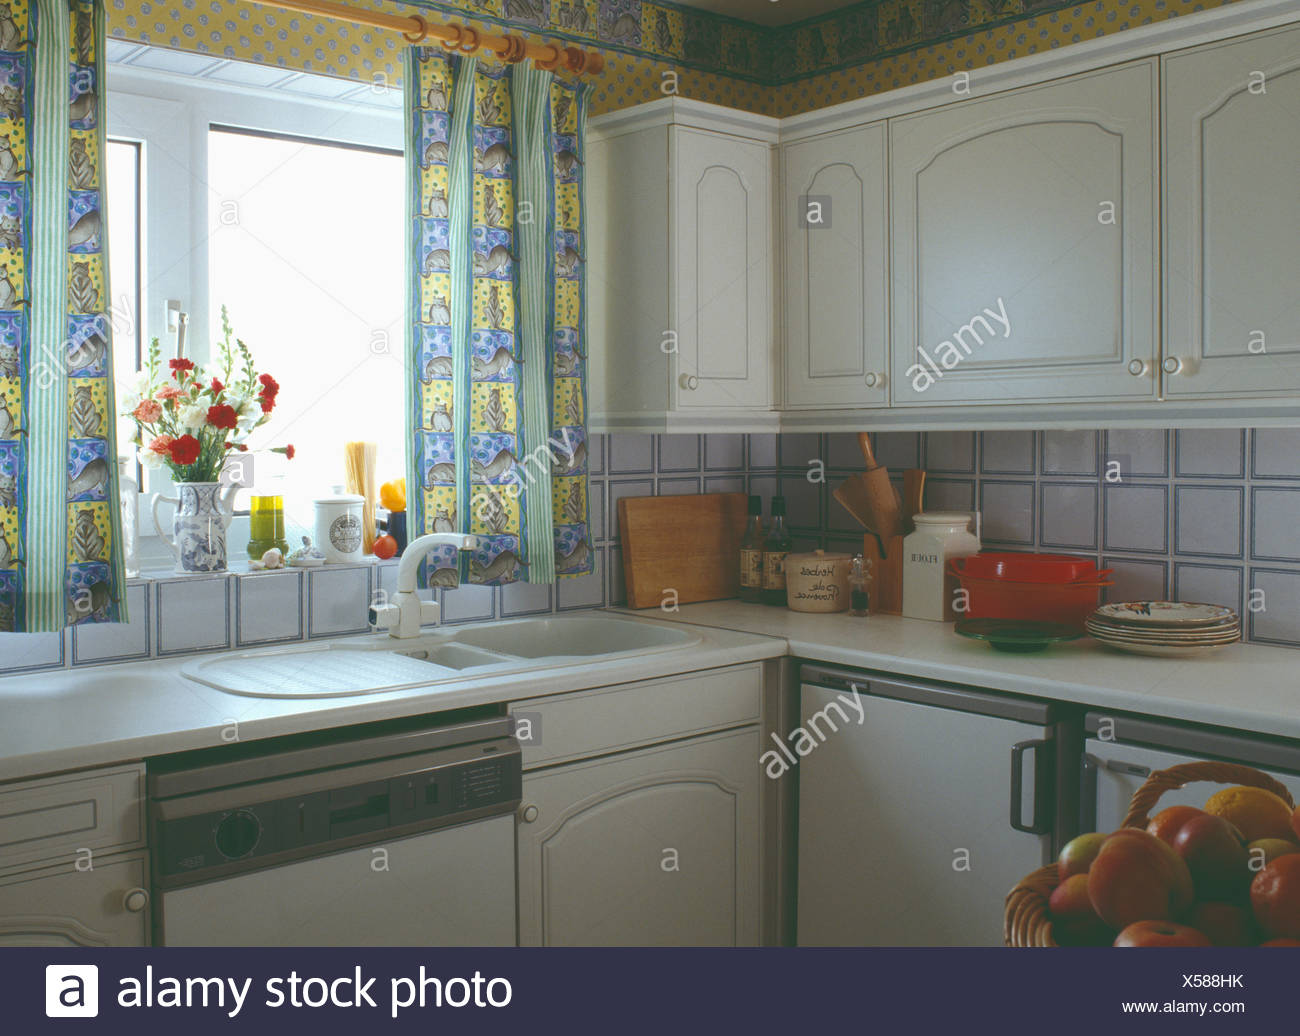 Yellow Patterned Curtains Above White Sink In Small Nineties Kitchen Stock Photo Alamy